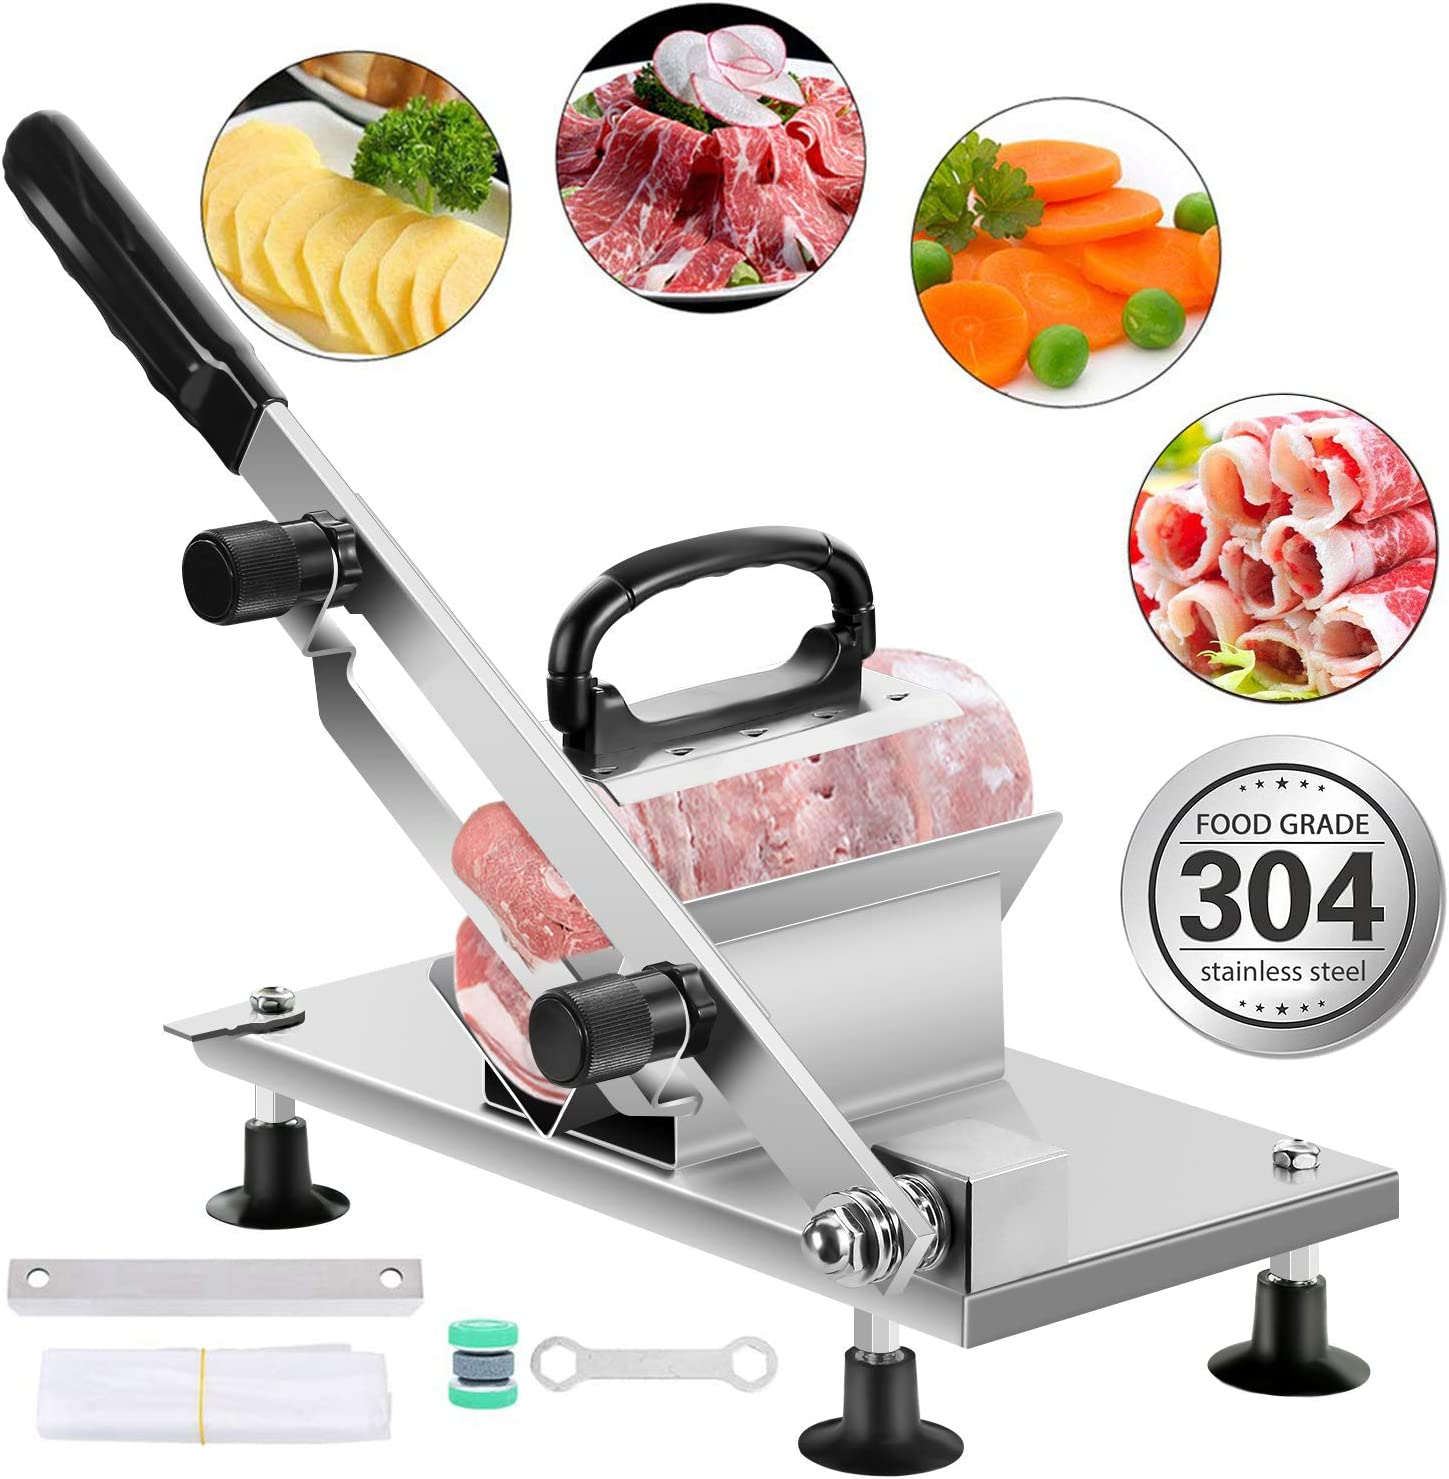 aingycy Frozen Meat Slicer Hand Slicing Machine Stainless Steel Frozen Beef Mutton Bacon Meat cutter Vegetable Fruit meat cleaver for Home Kitchen and Commercial Use (Sliver-2)